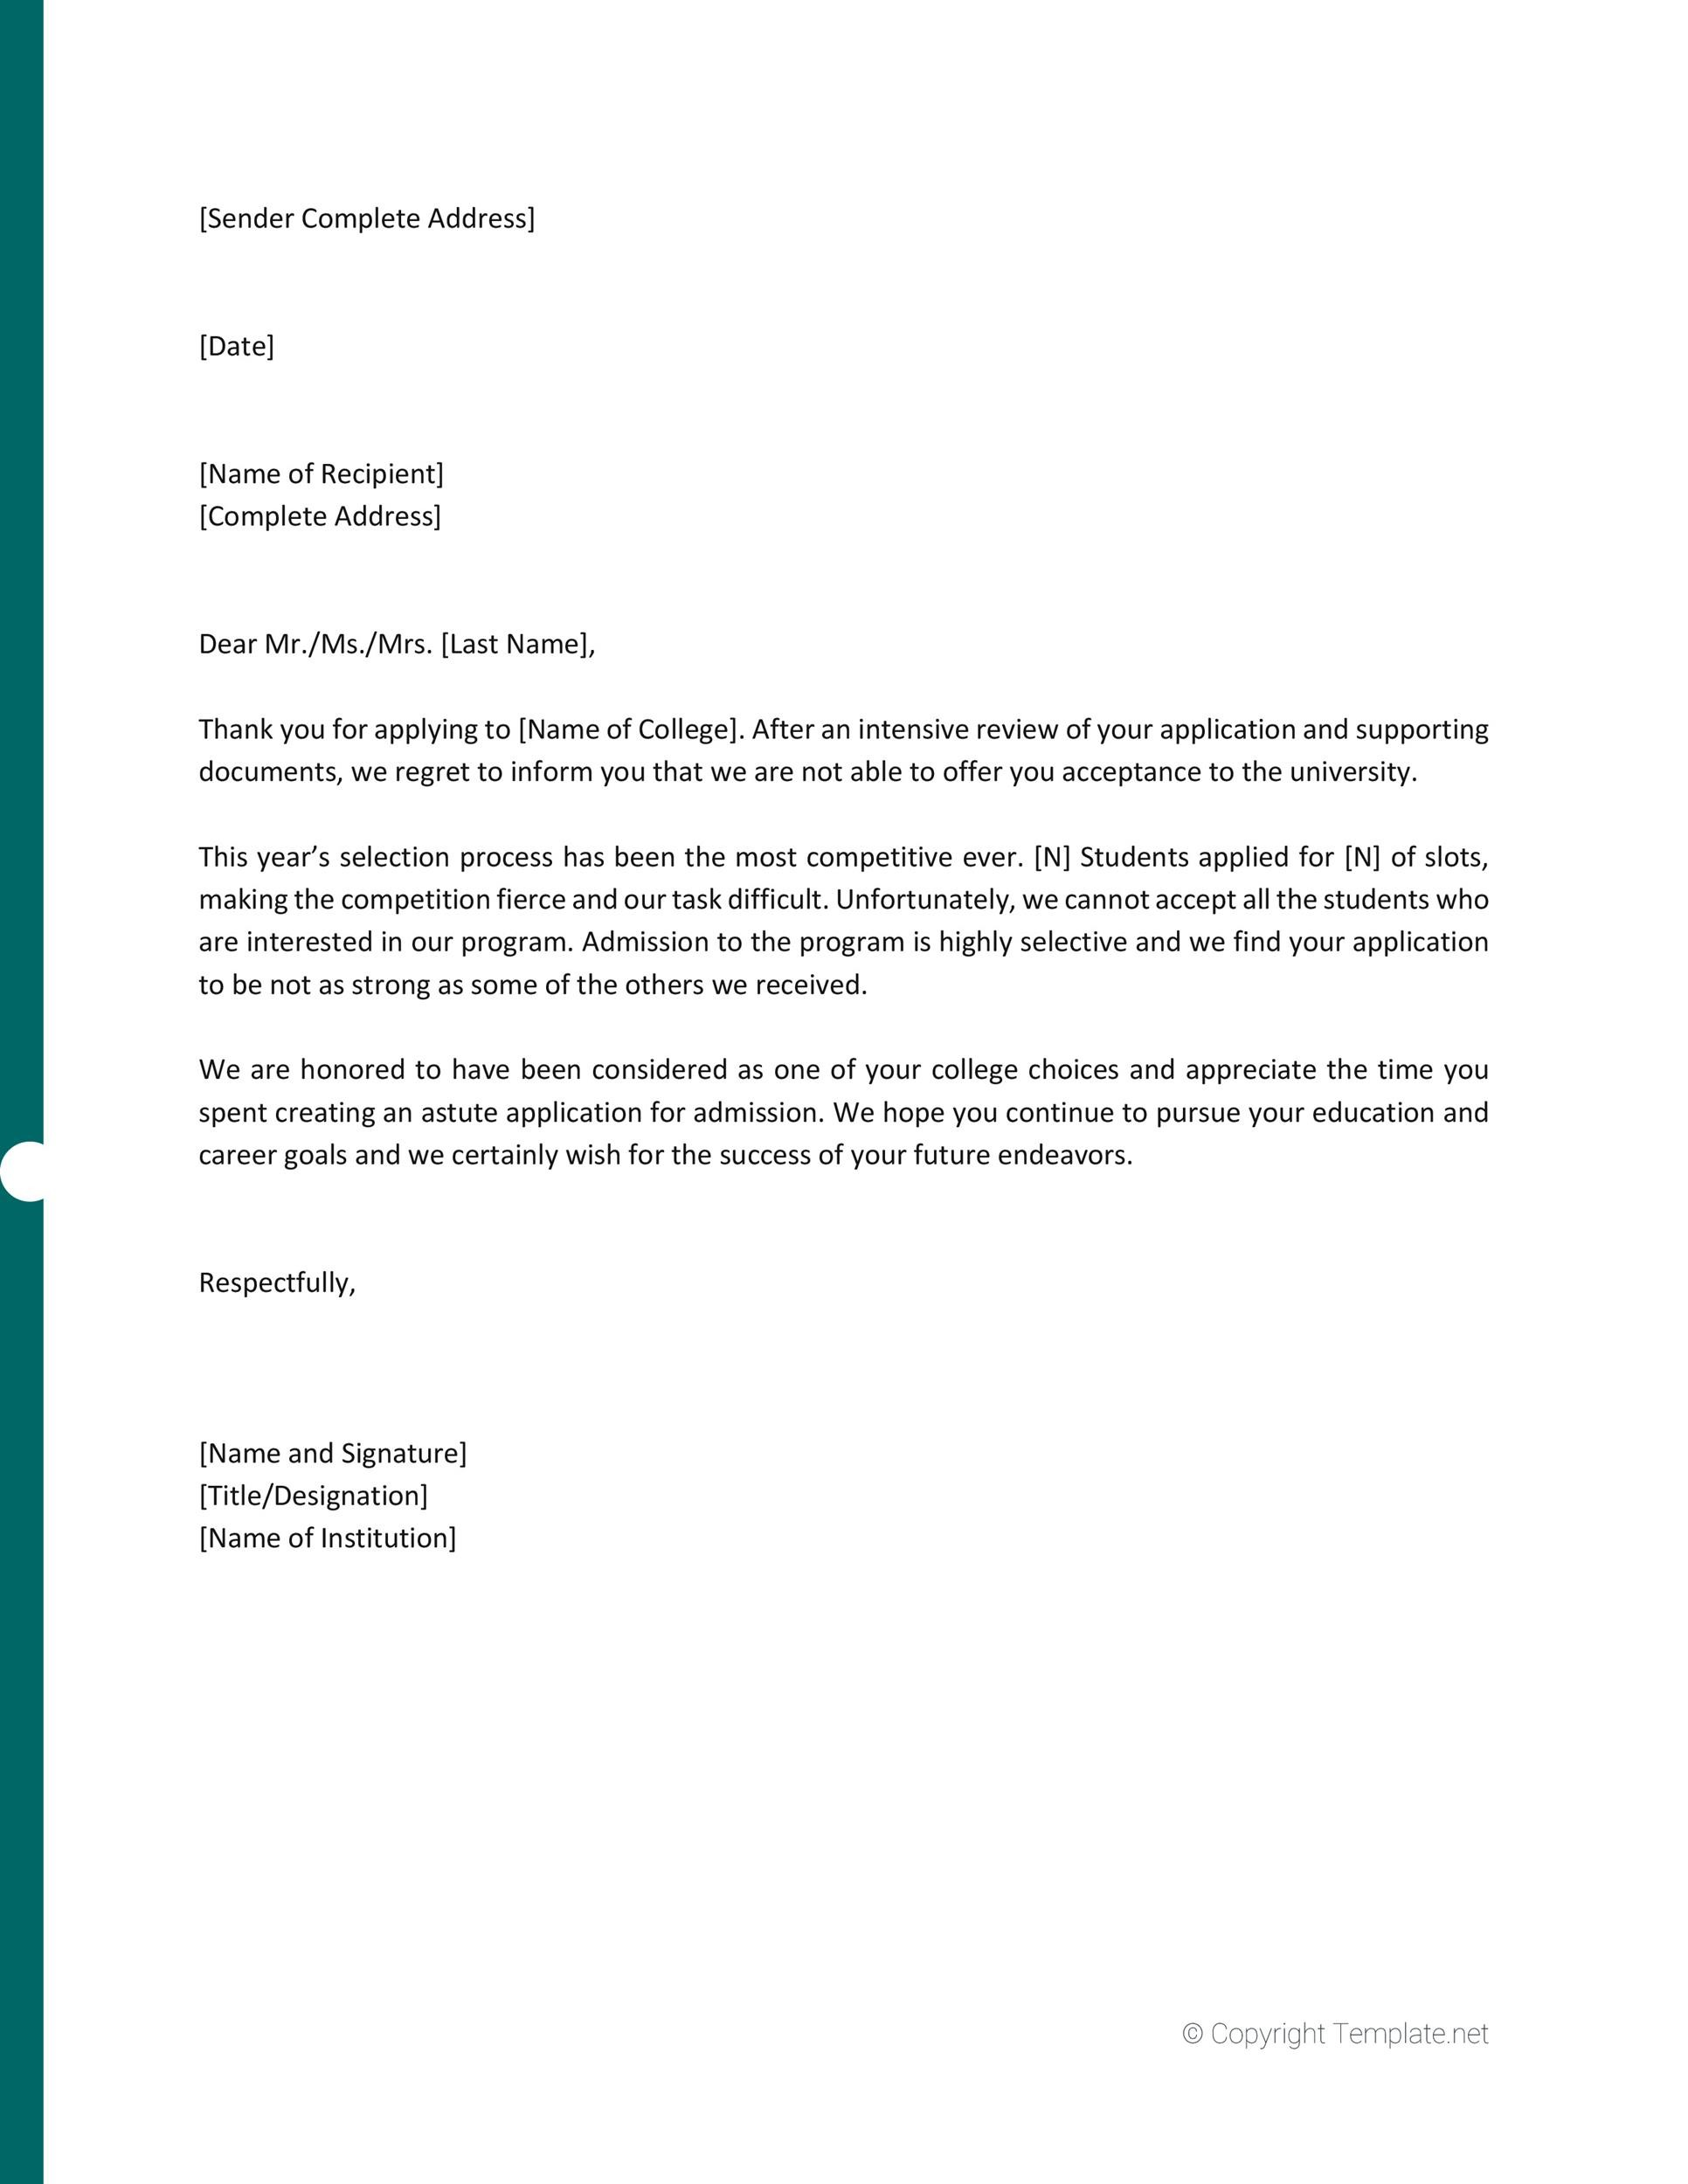 Free college rejection letter 02